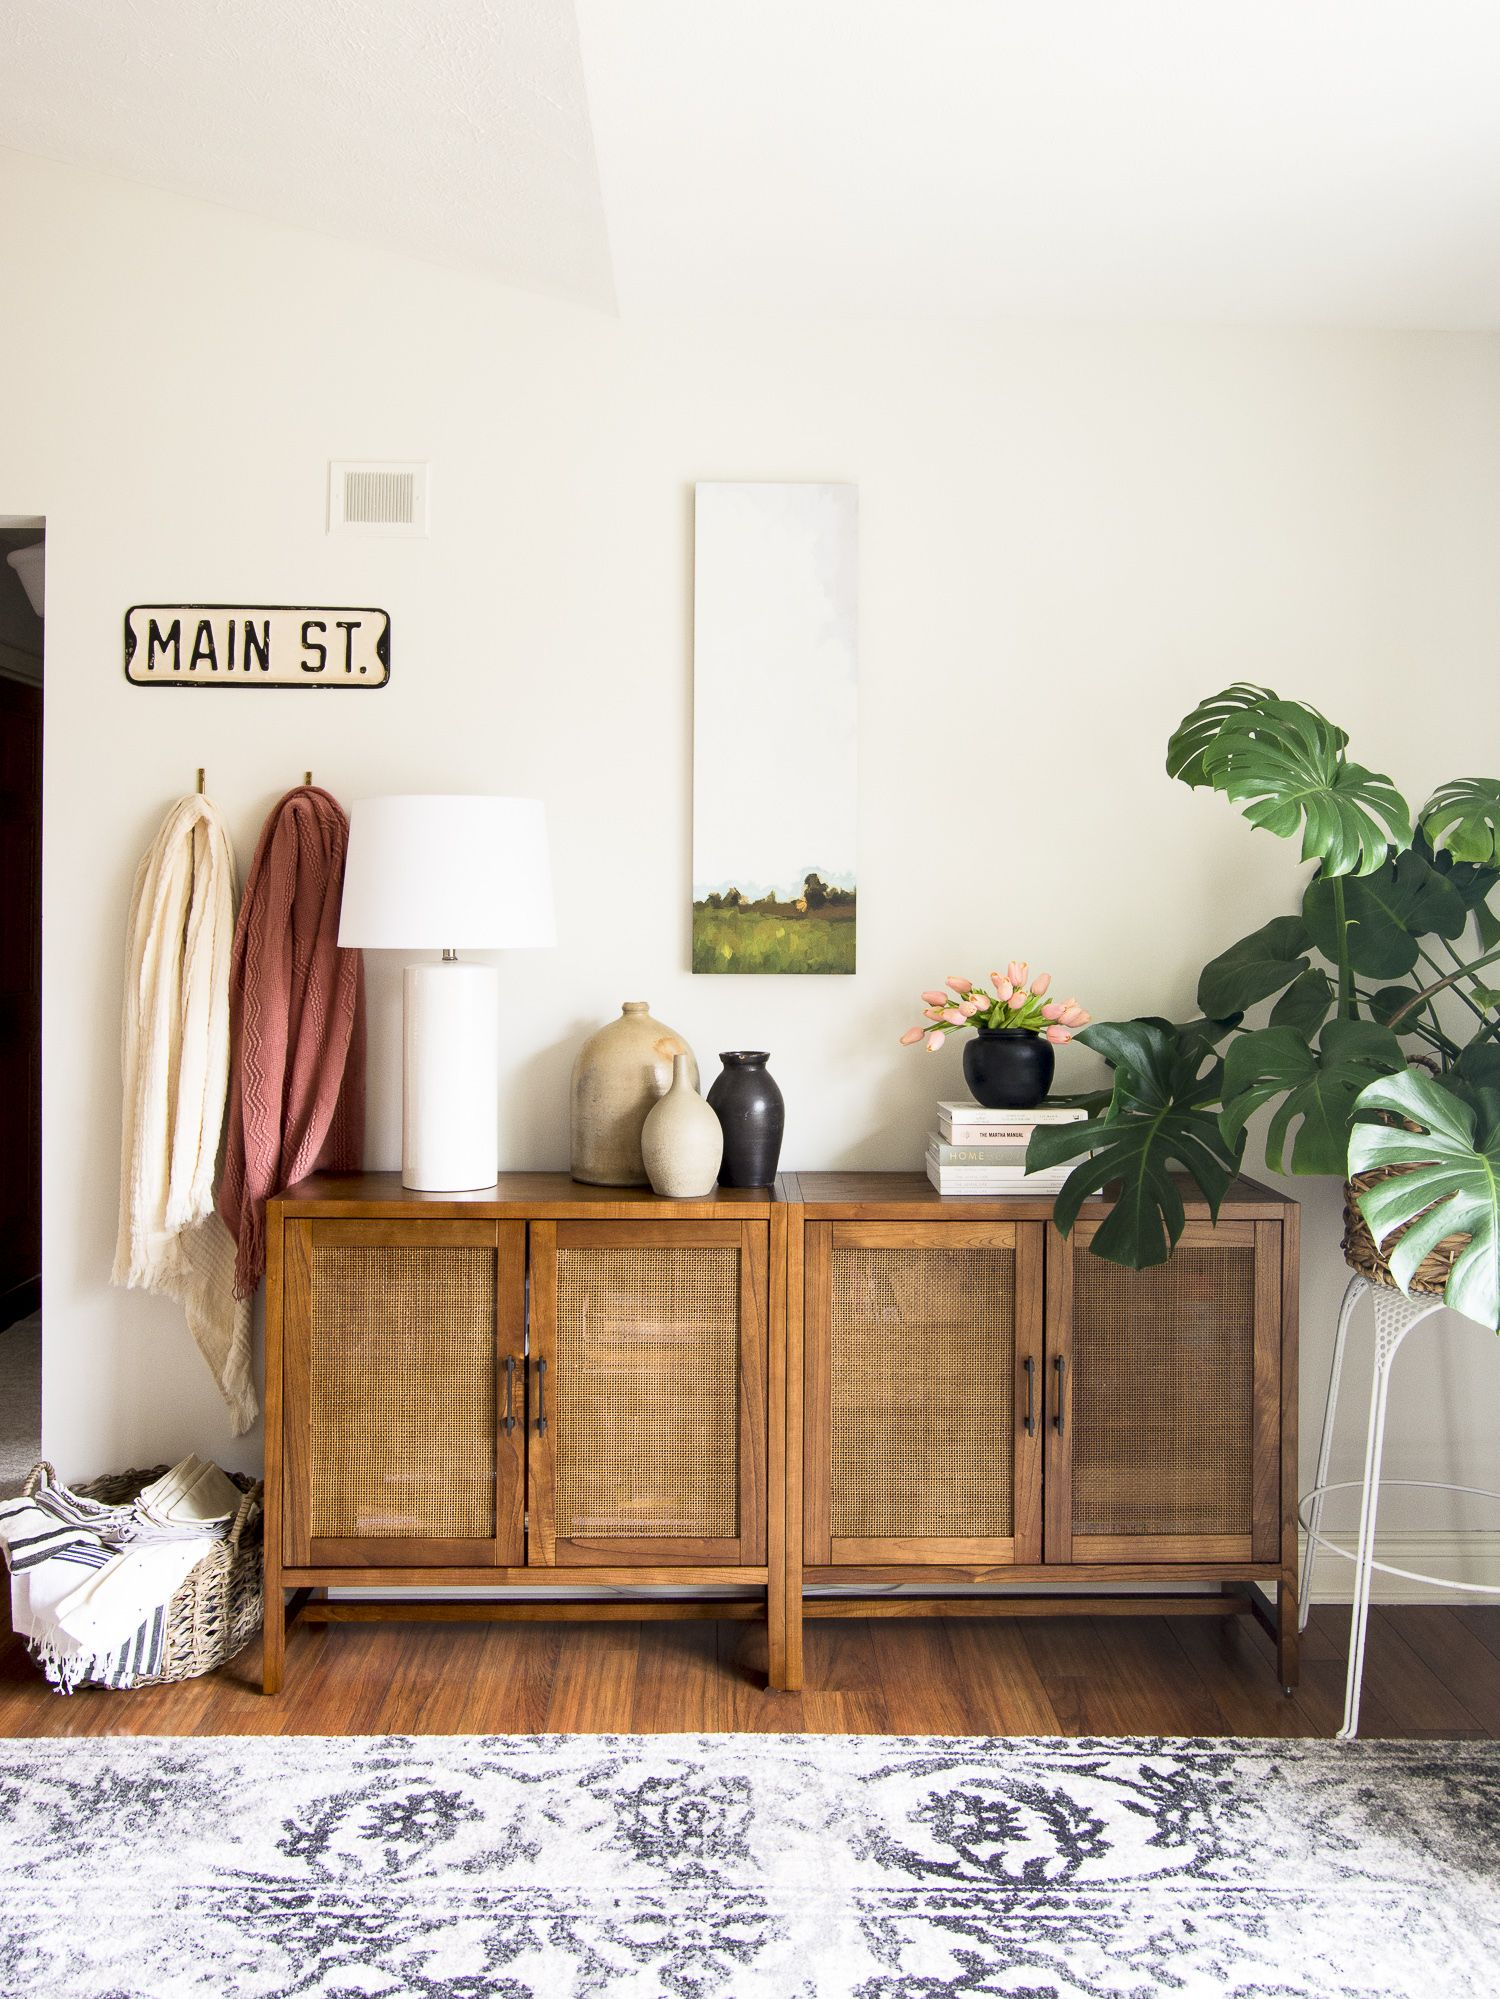 Neil Dusheiko Creates Home For Father In Law Featuring A Wall Of Art In 2021 Living Room Storage Small Living Room Storage Home Decor